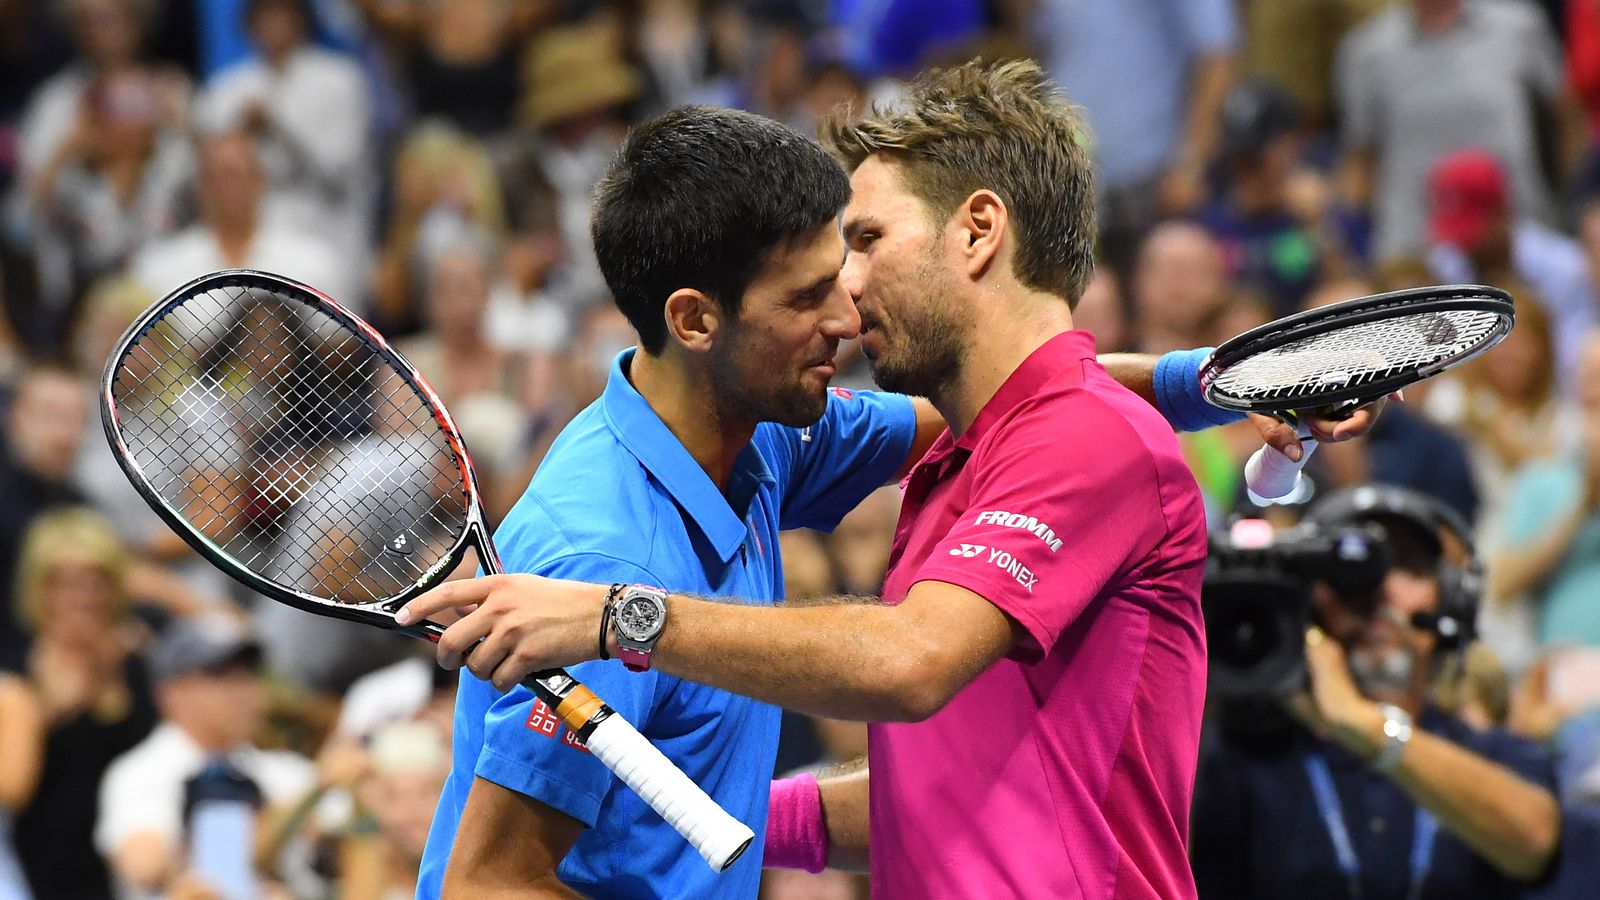 US Open 2016: Bracket, schedule and scores for men's draw